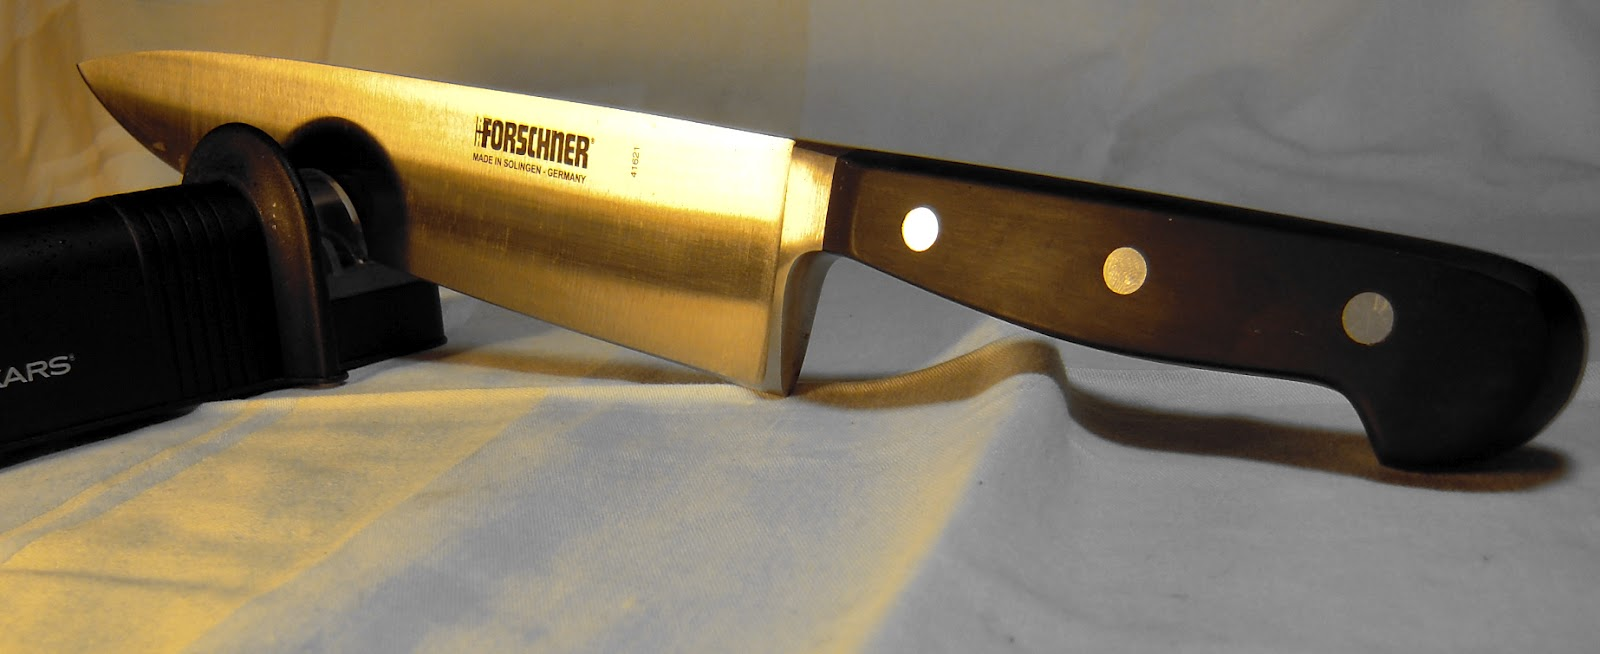 words and music cutting edge cutting edges forschner forged 10